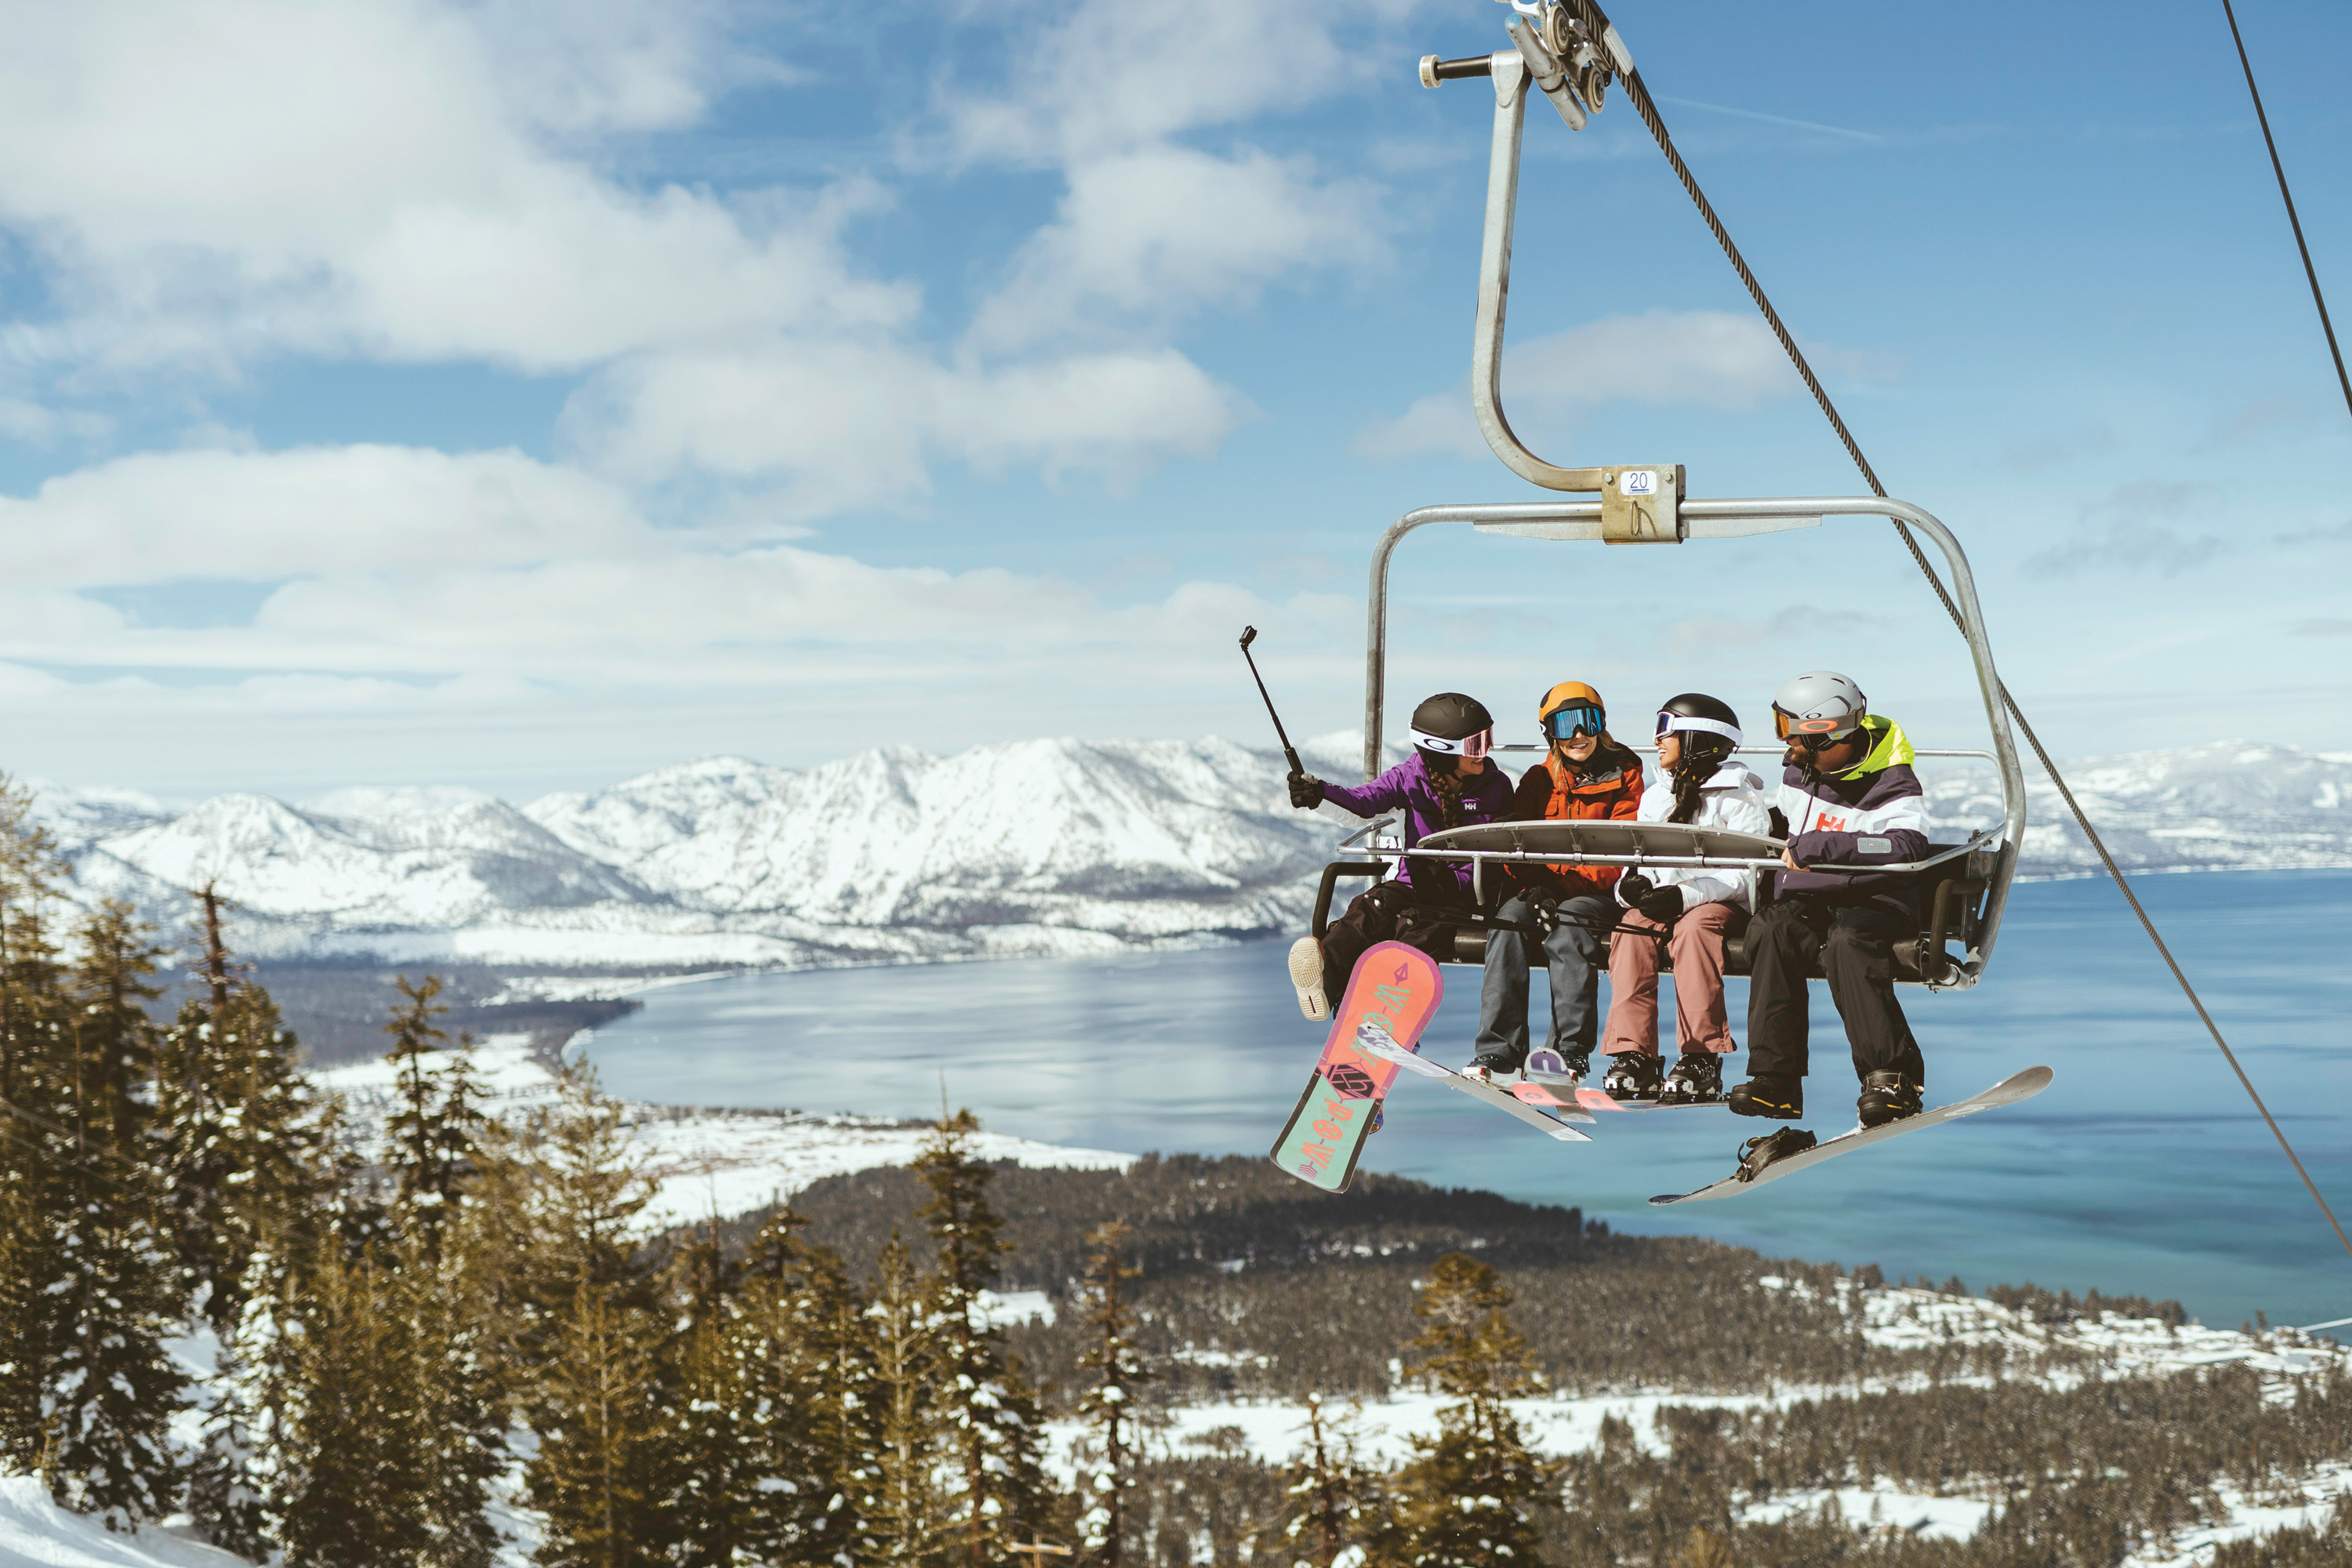 Skiers on a chairlift at Heavenly, California